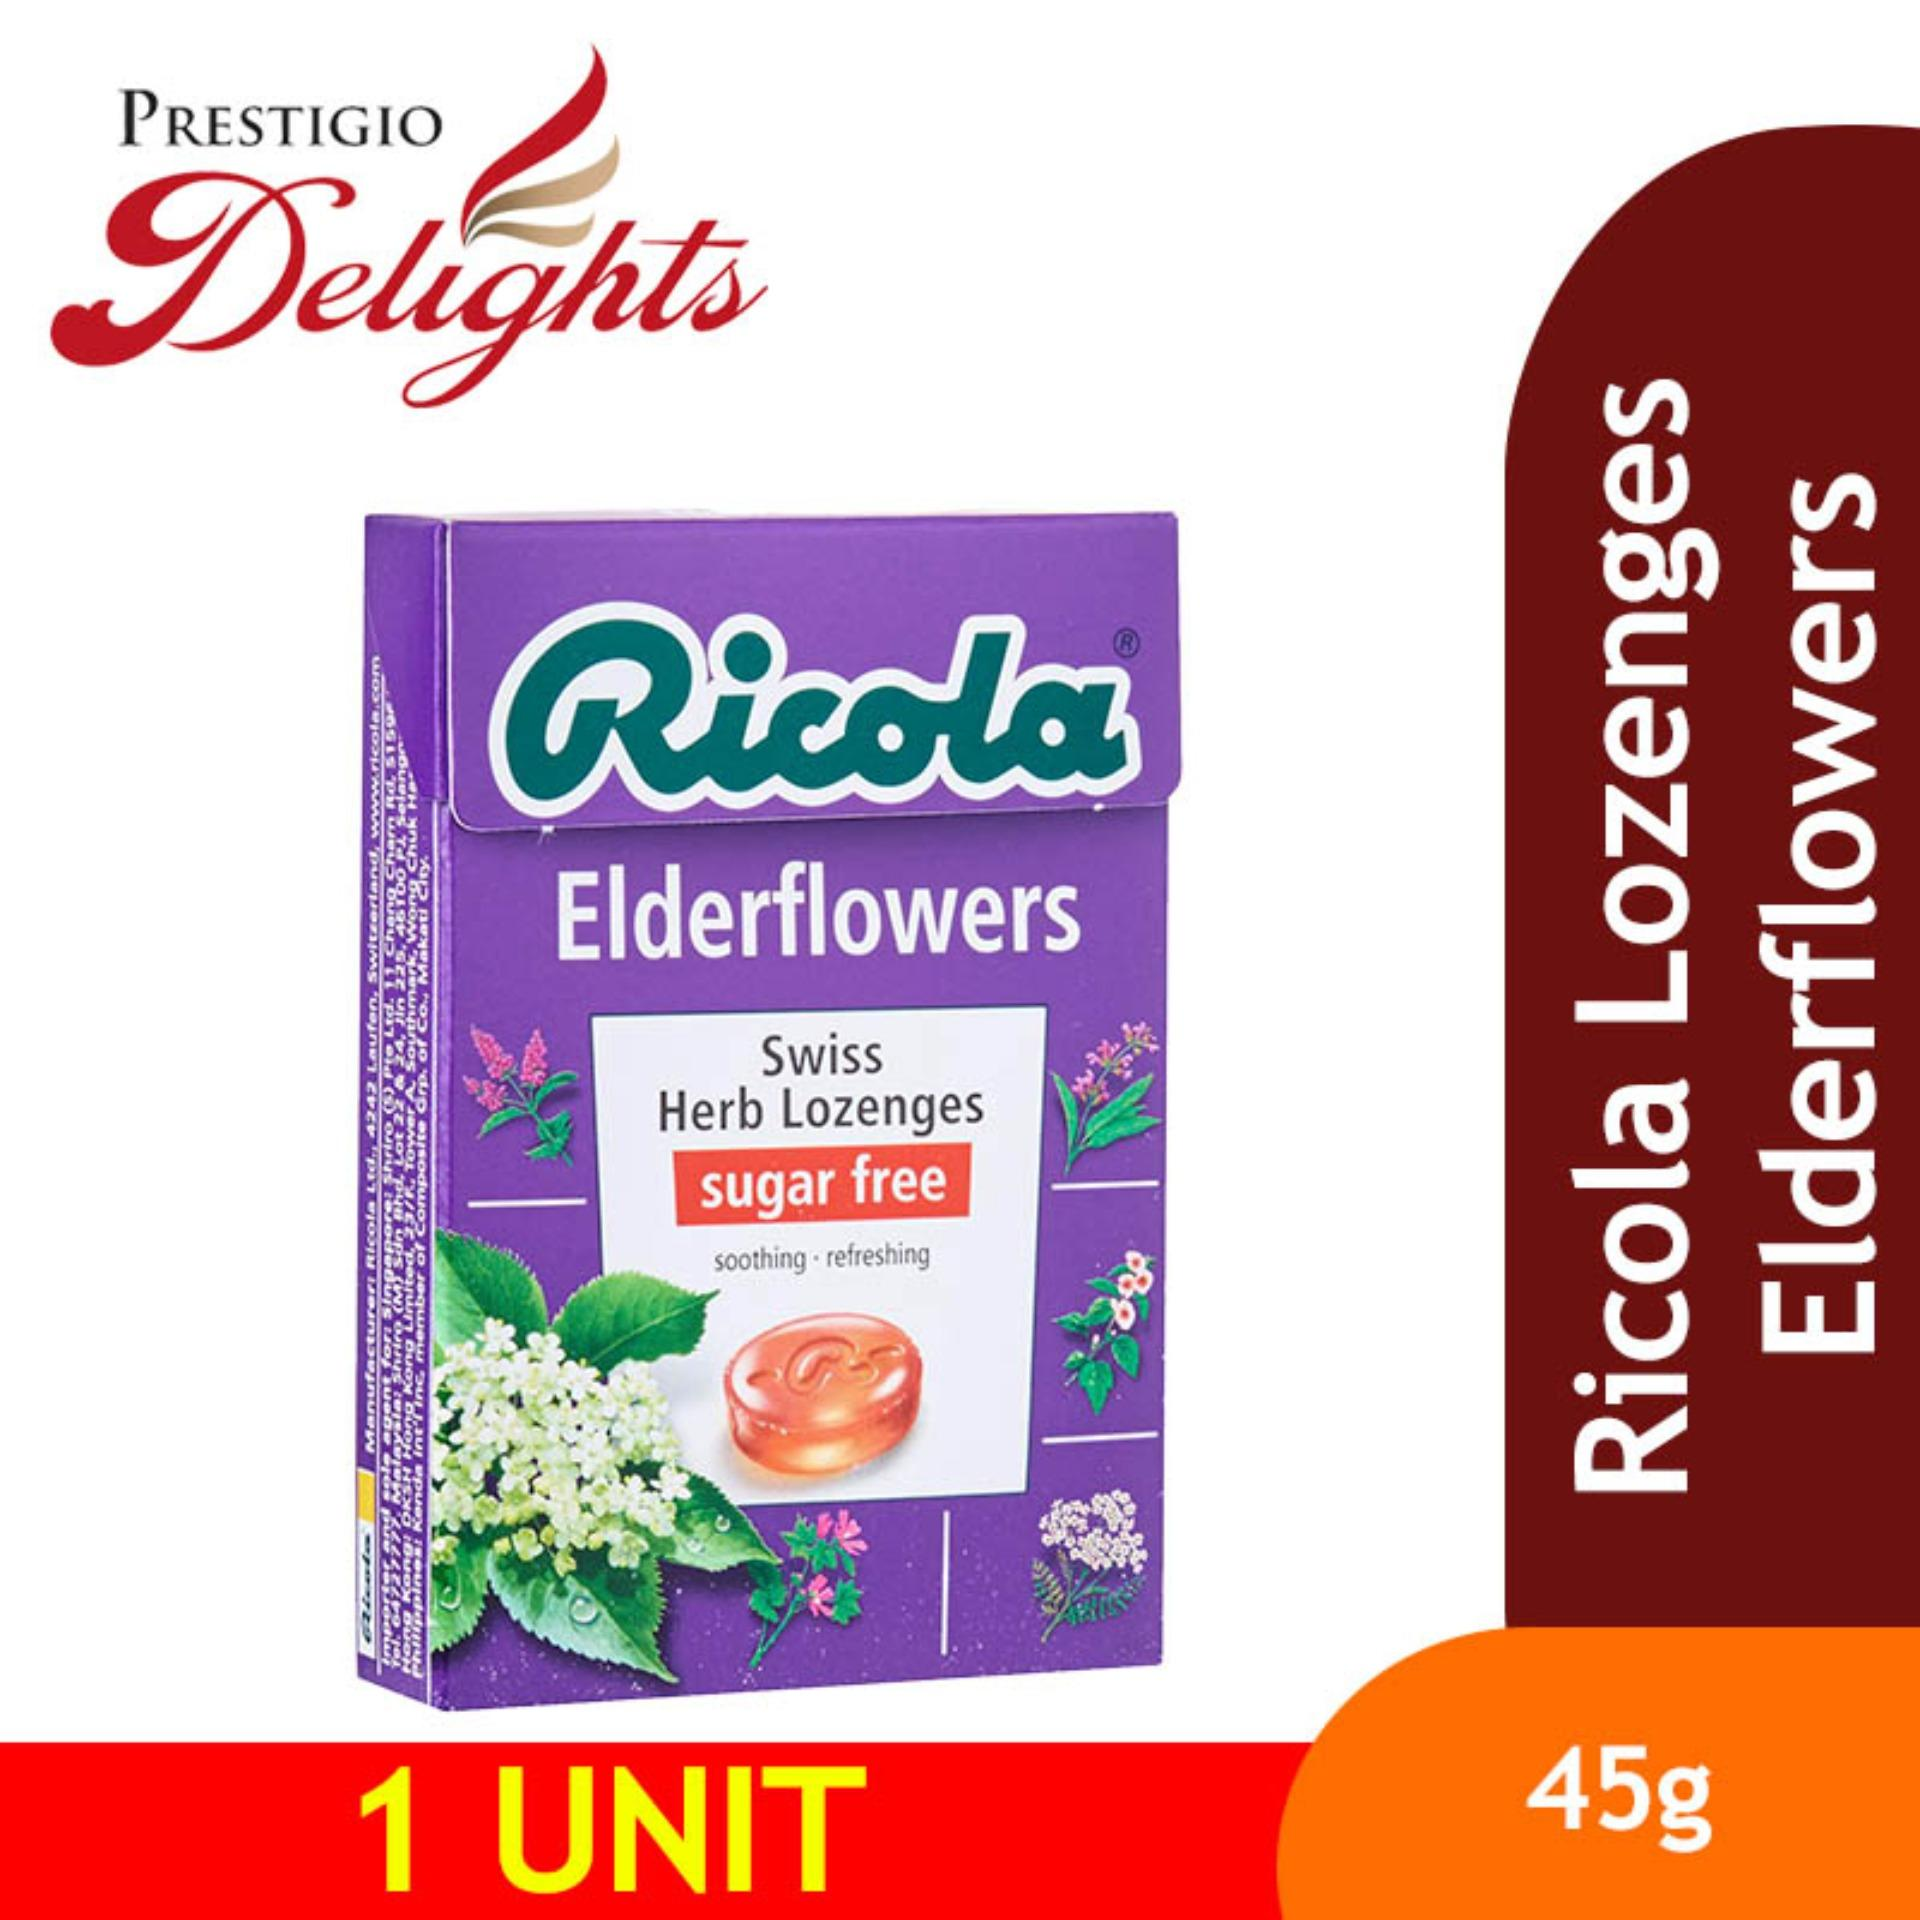 Ricola Lozenges Elderflowers 45g By Prestigio Delights.